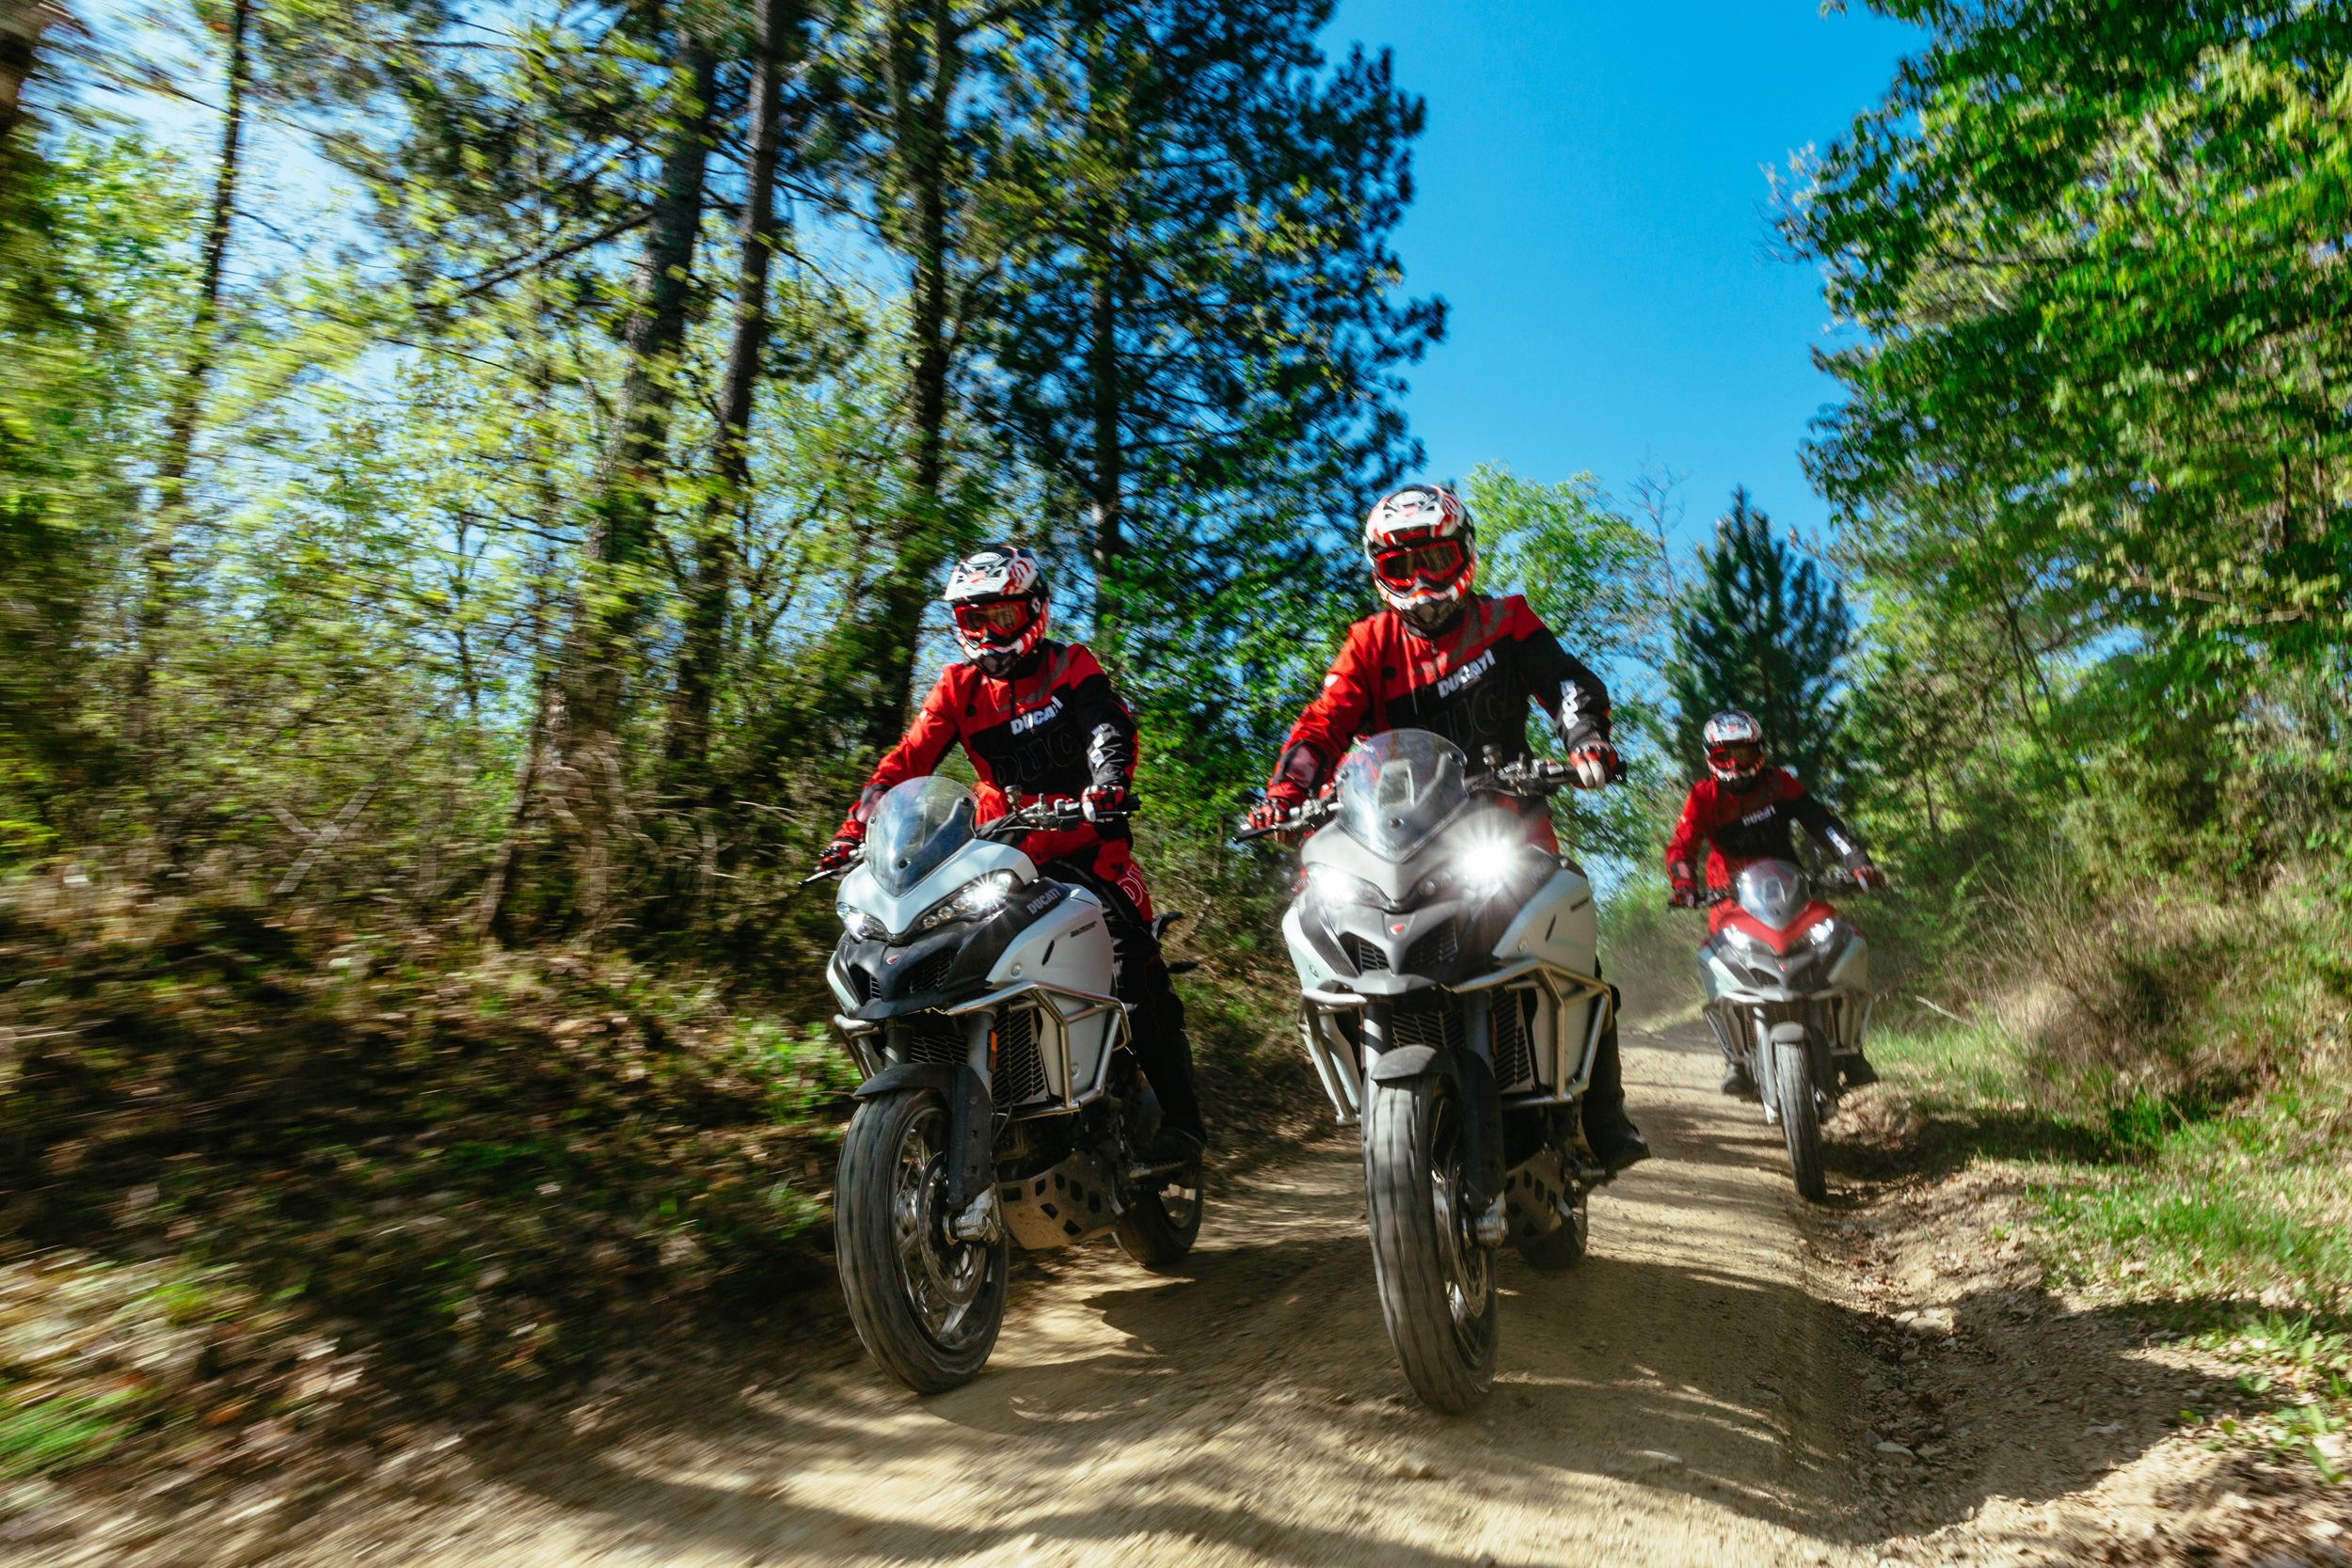 Ducati Riding Experience (DRE) Enduro Academy